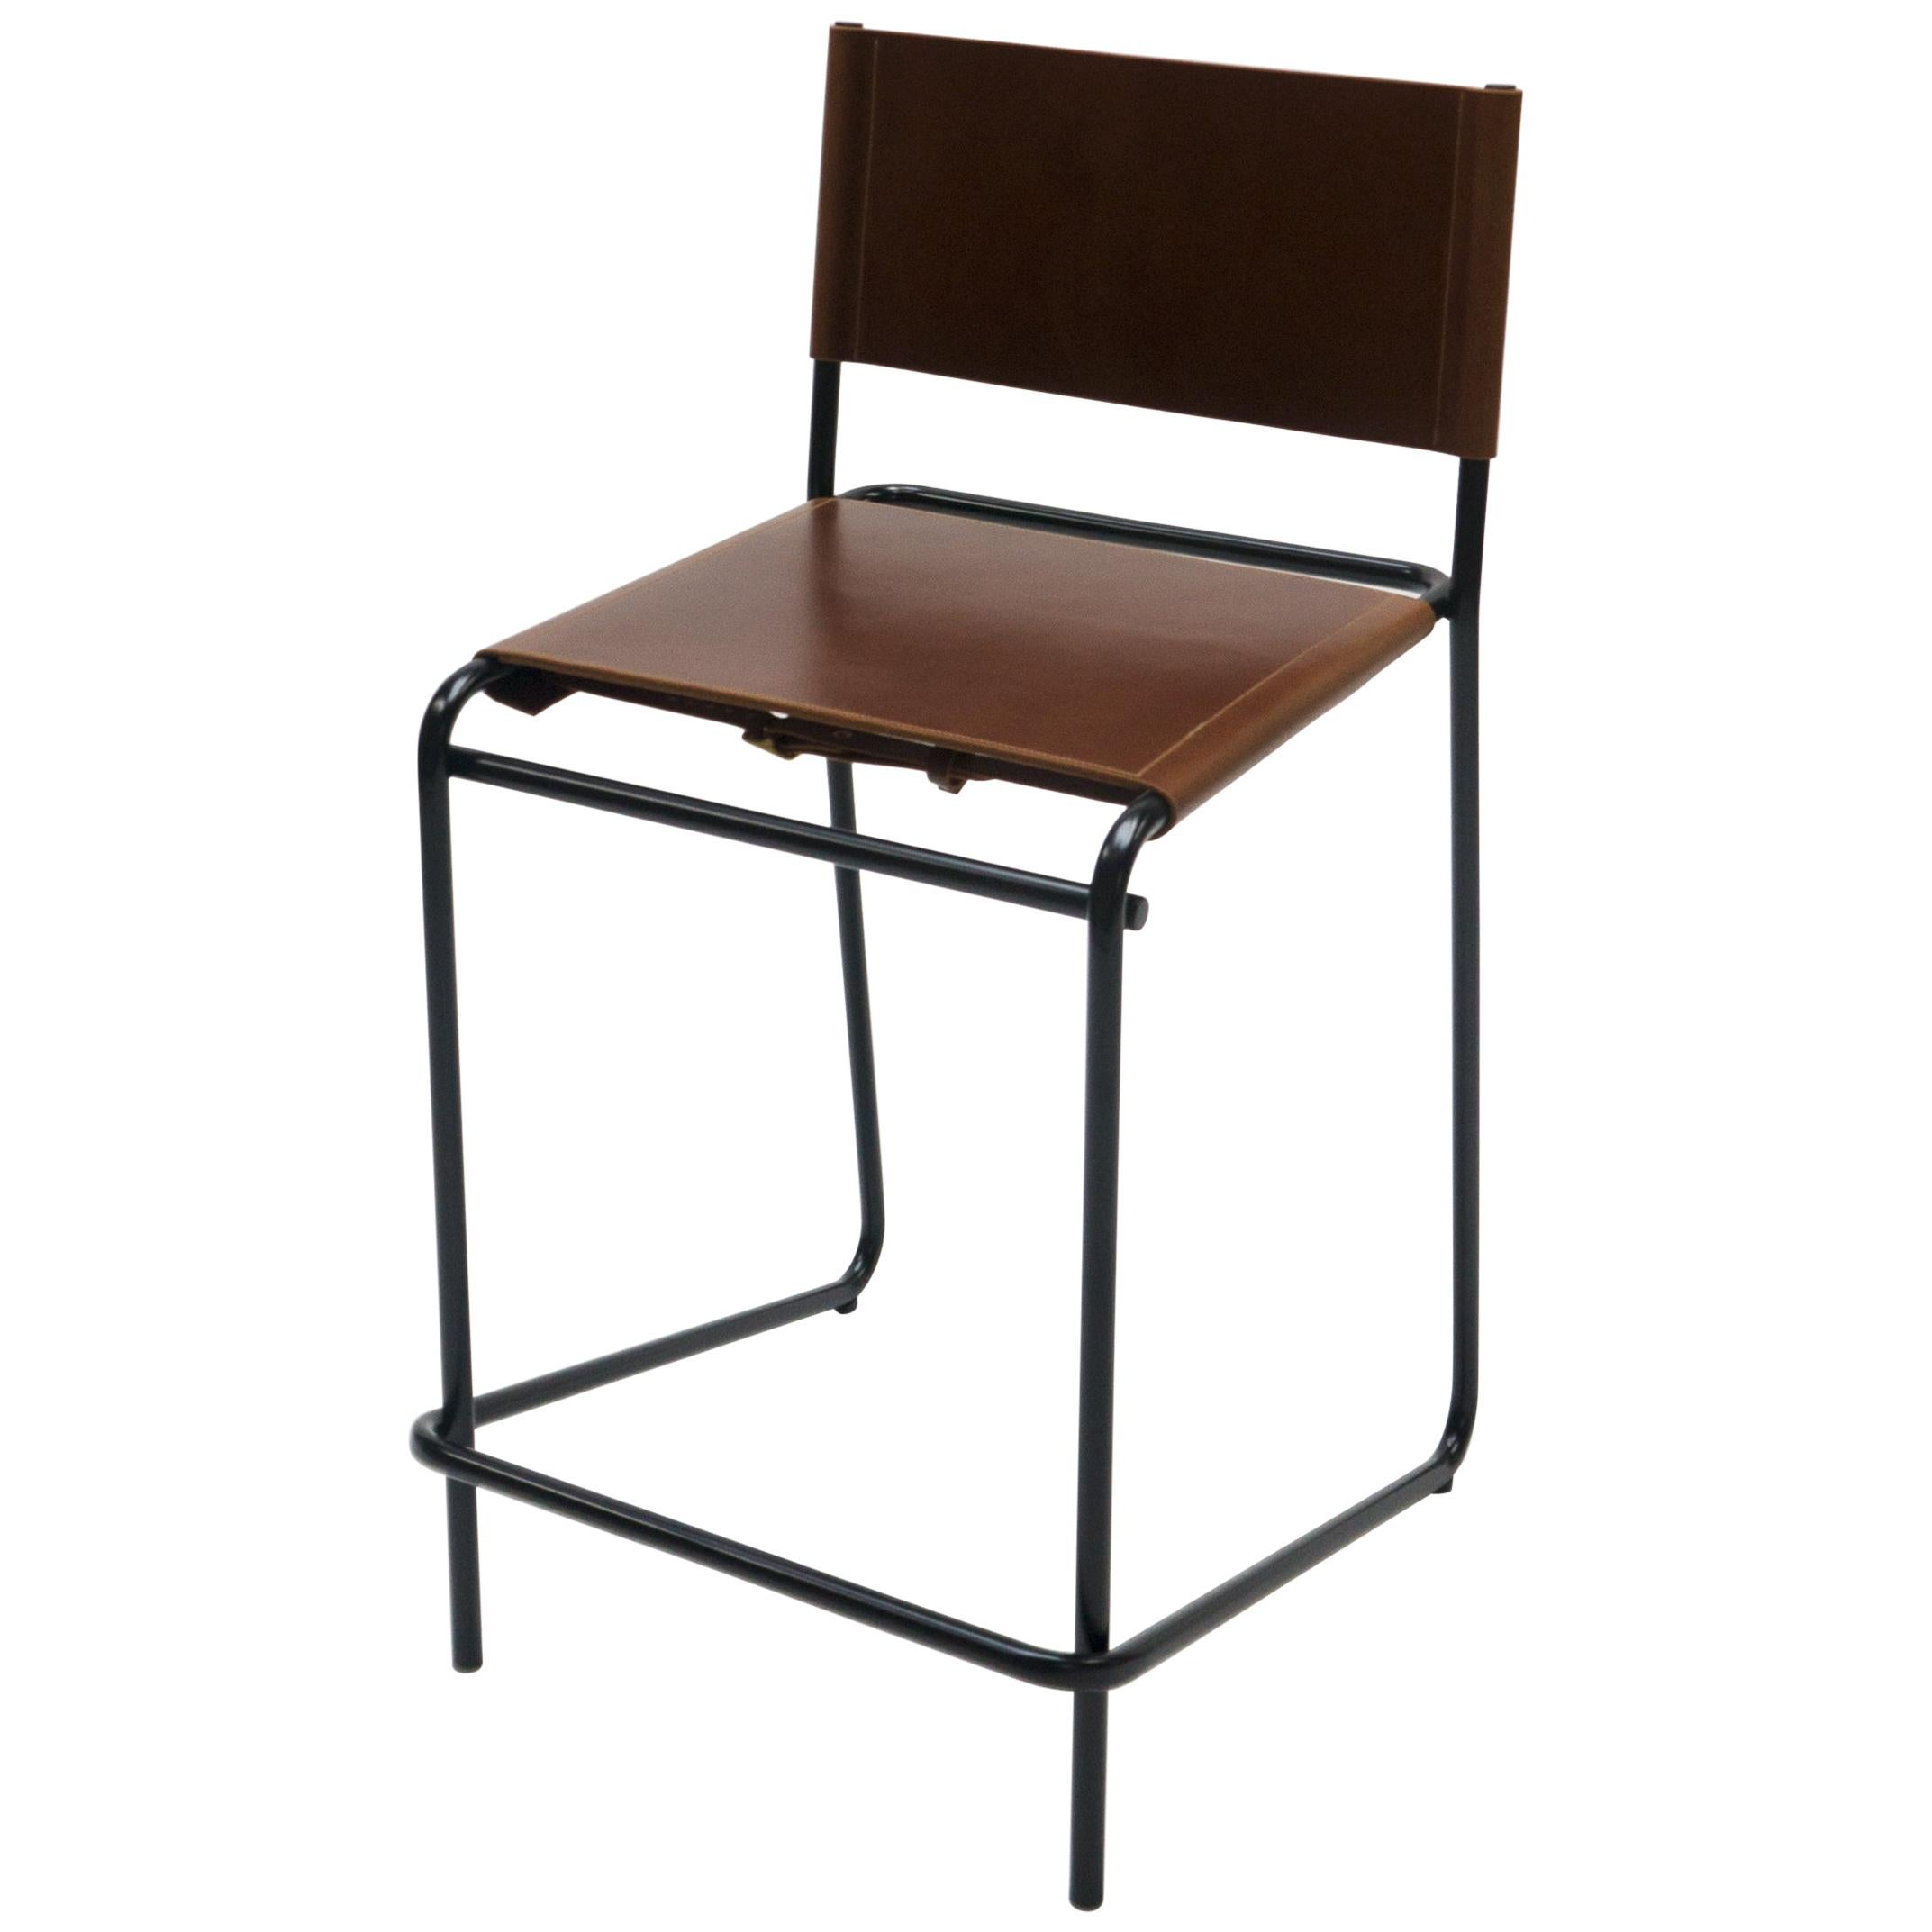 Flora Counter Stool in Brown Leather and Black Steel by Steven Bukowski